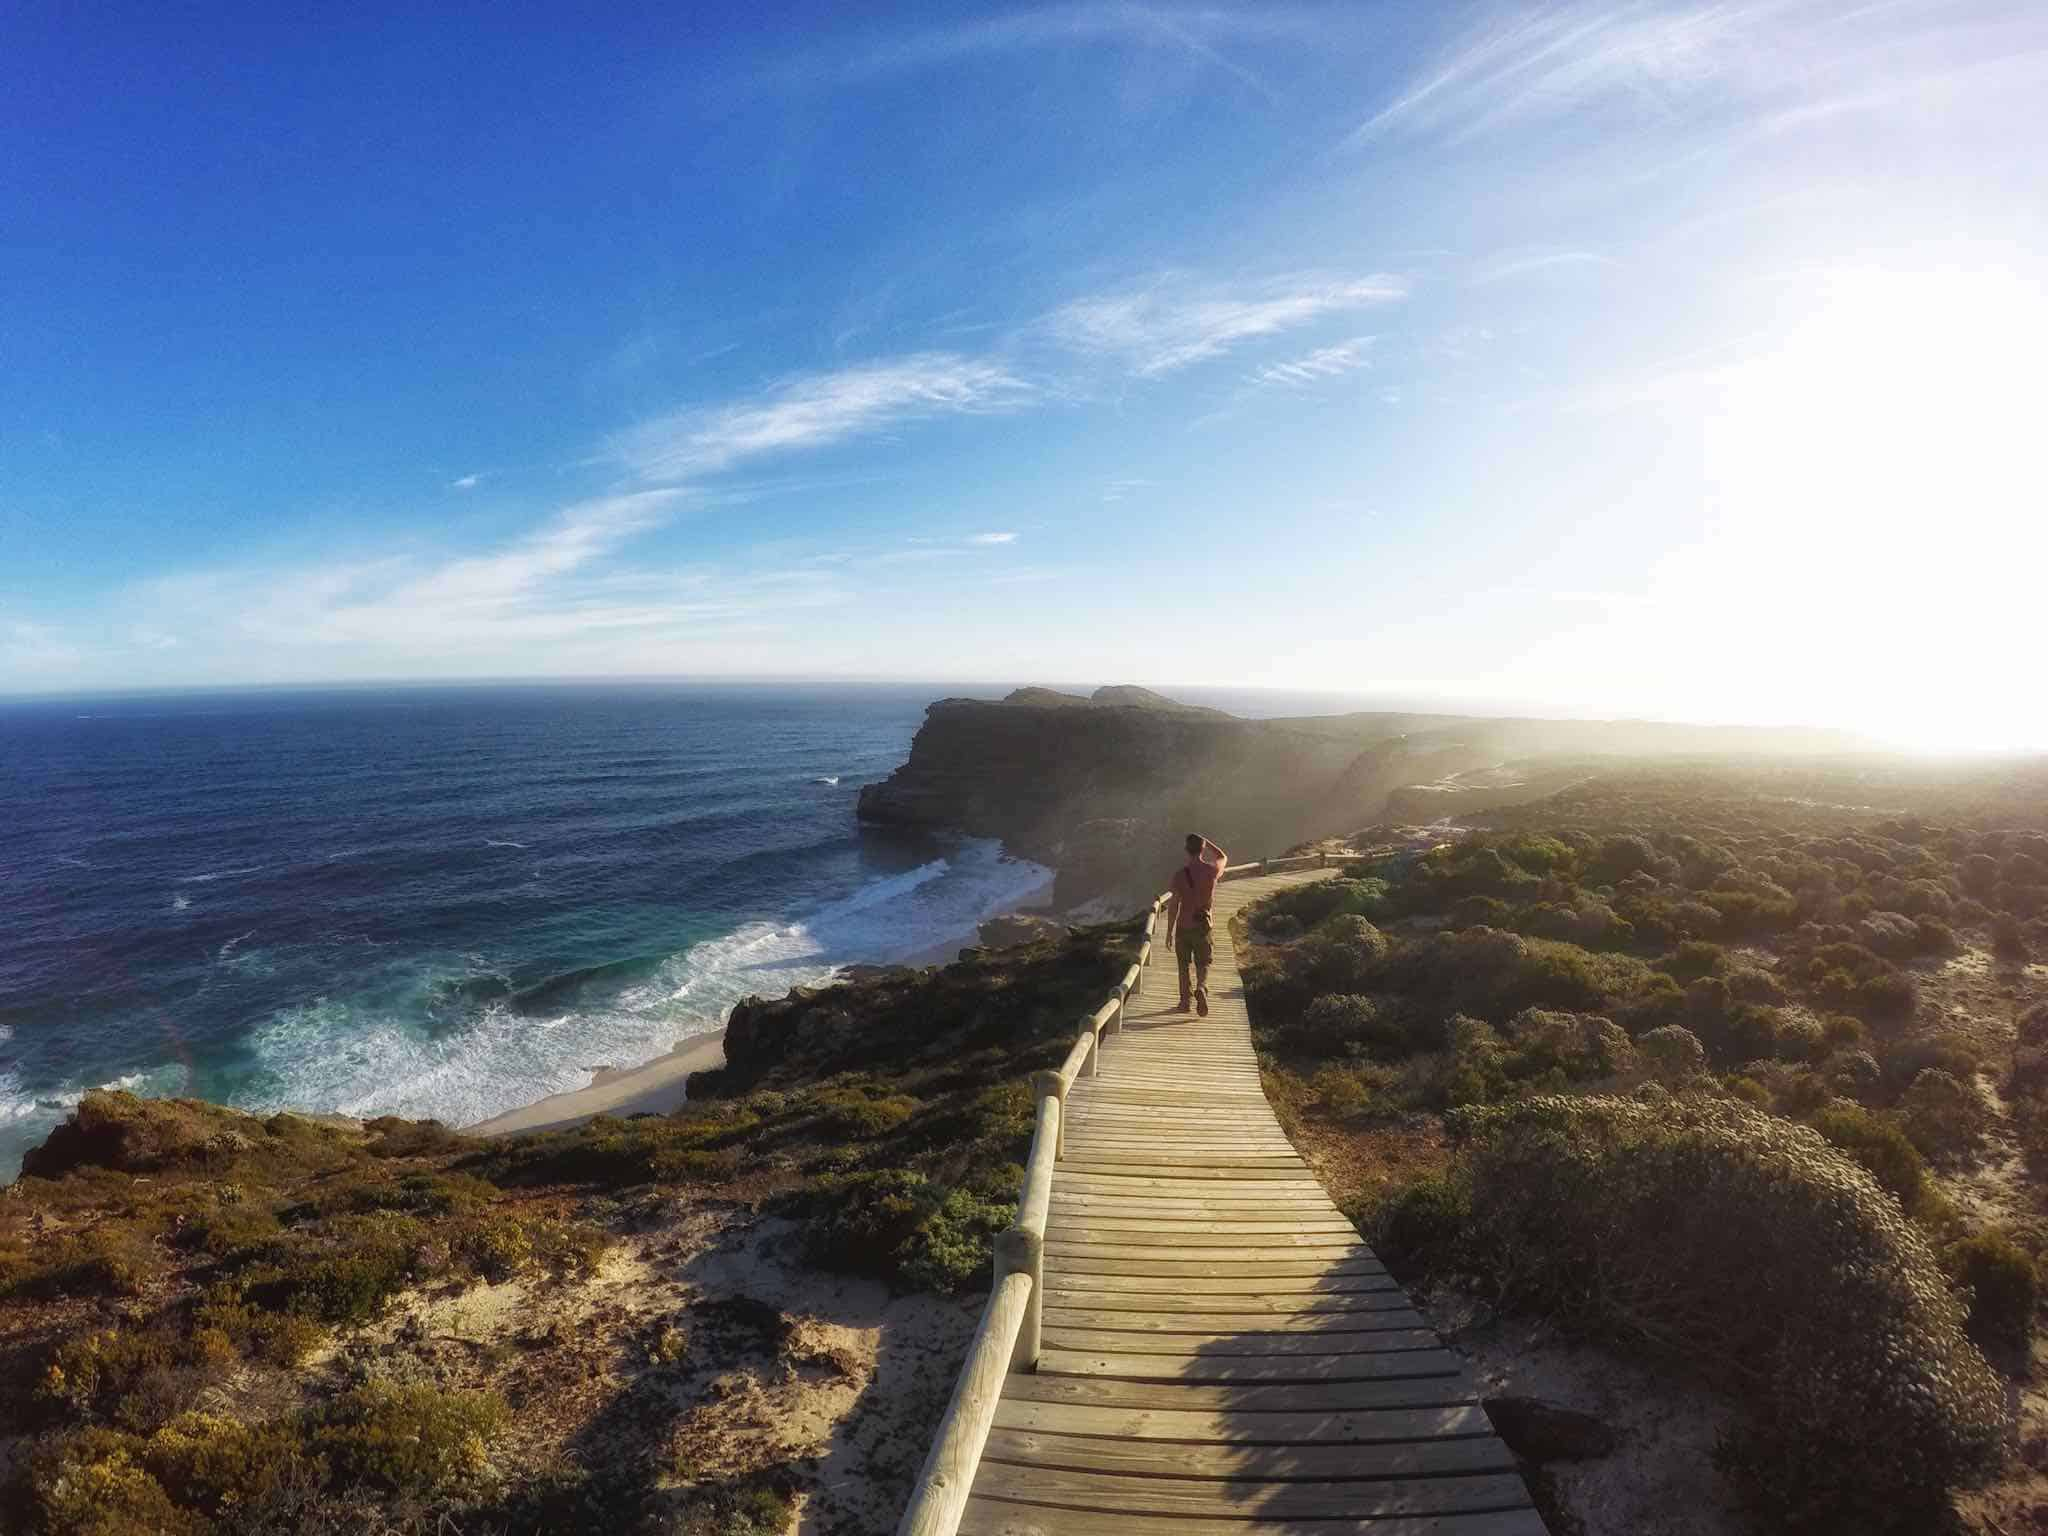 Vacation in South Africa at Cape Point